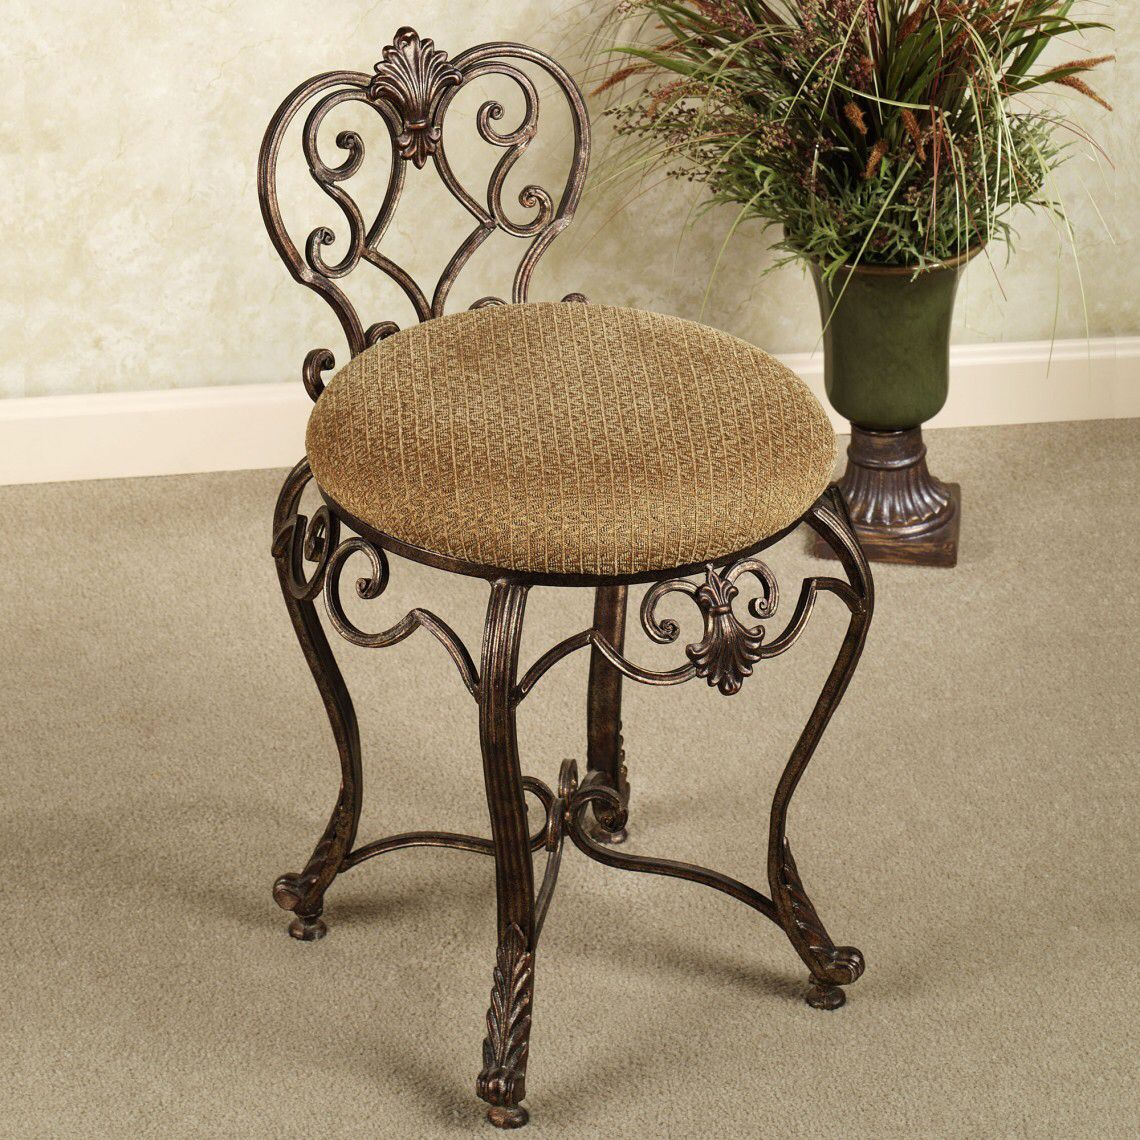 Wrought Iron Vanity vanity chair | estructuras y muebles metálicos | pinterest